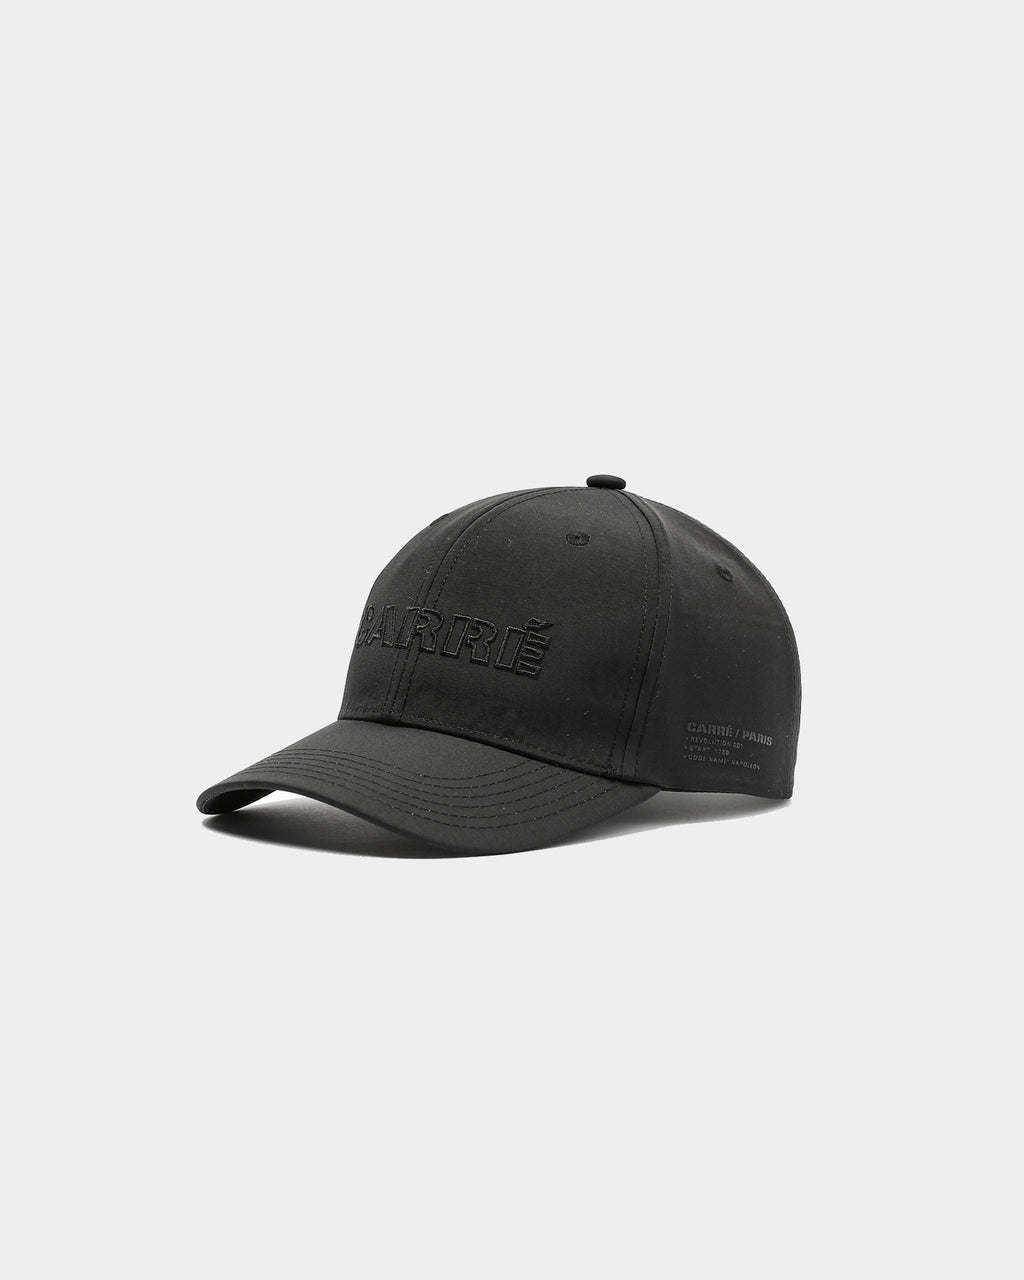 Carré Rev 001 Strapback Black